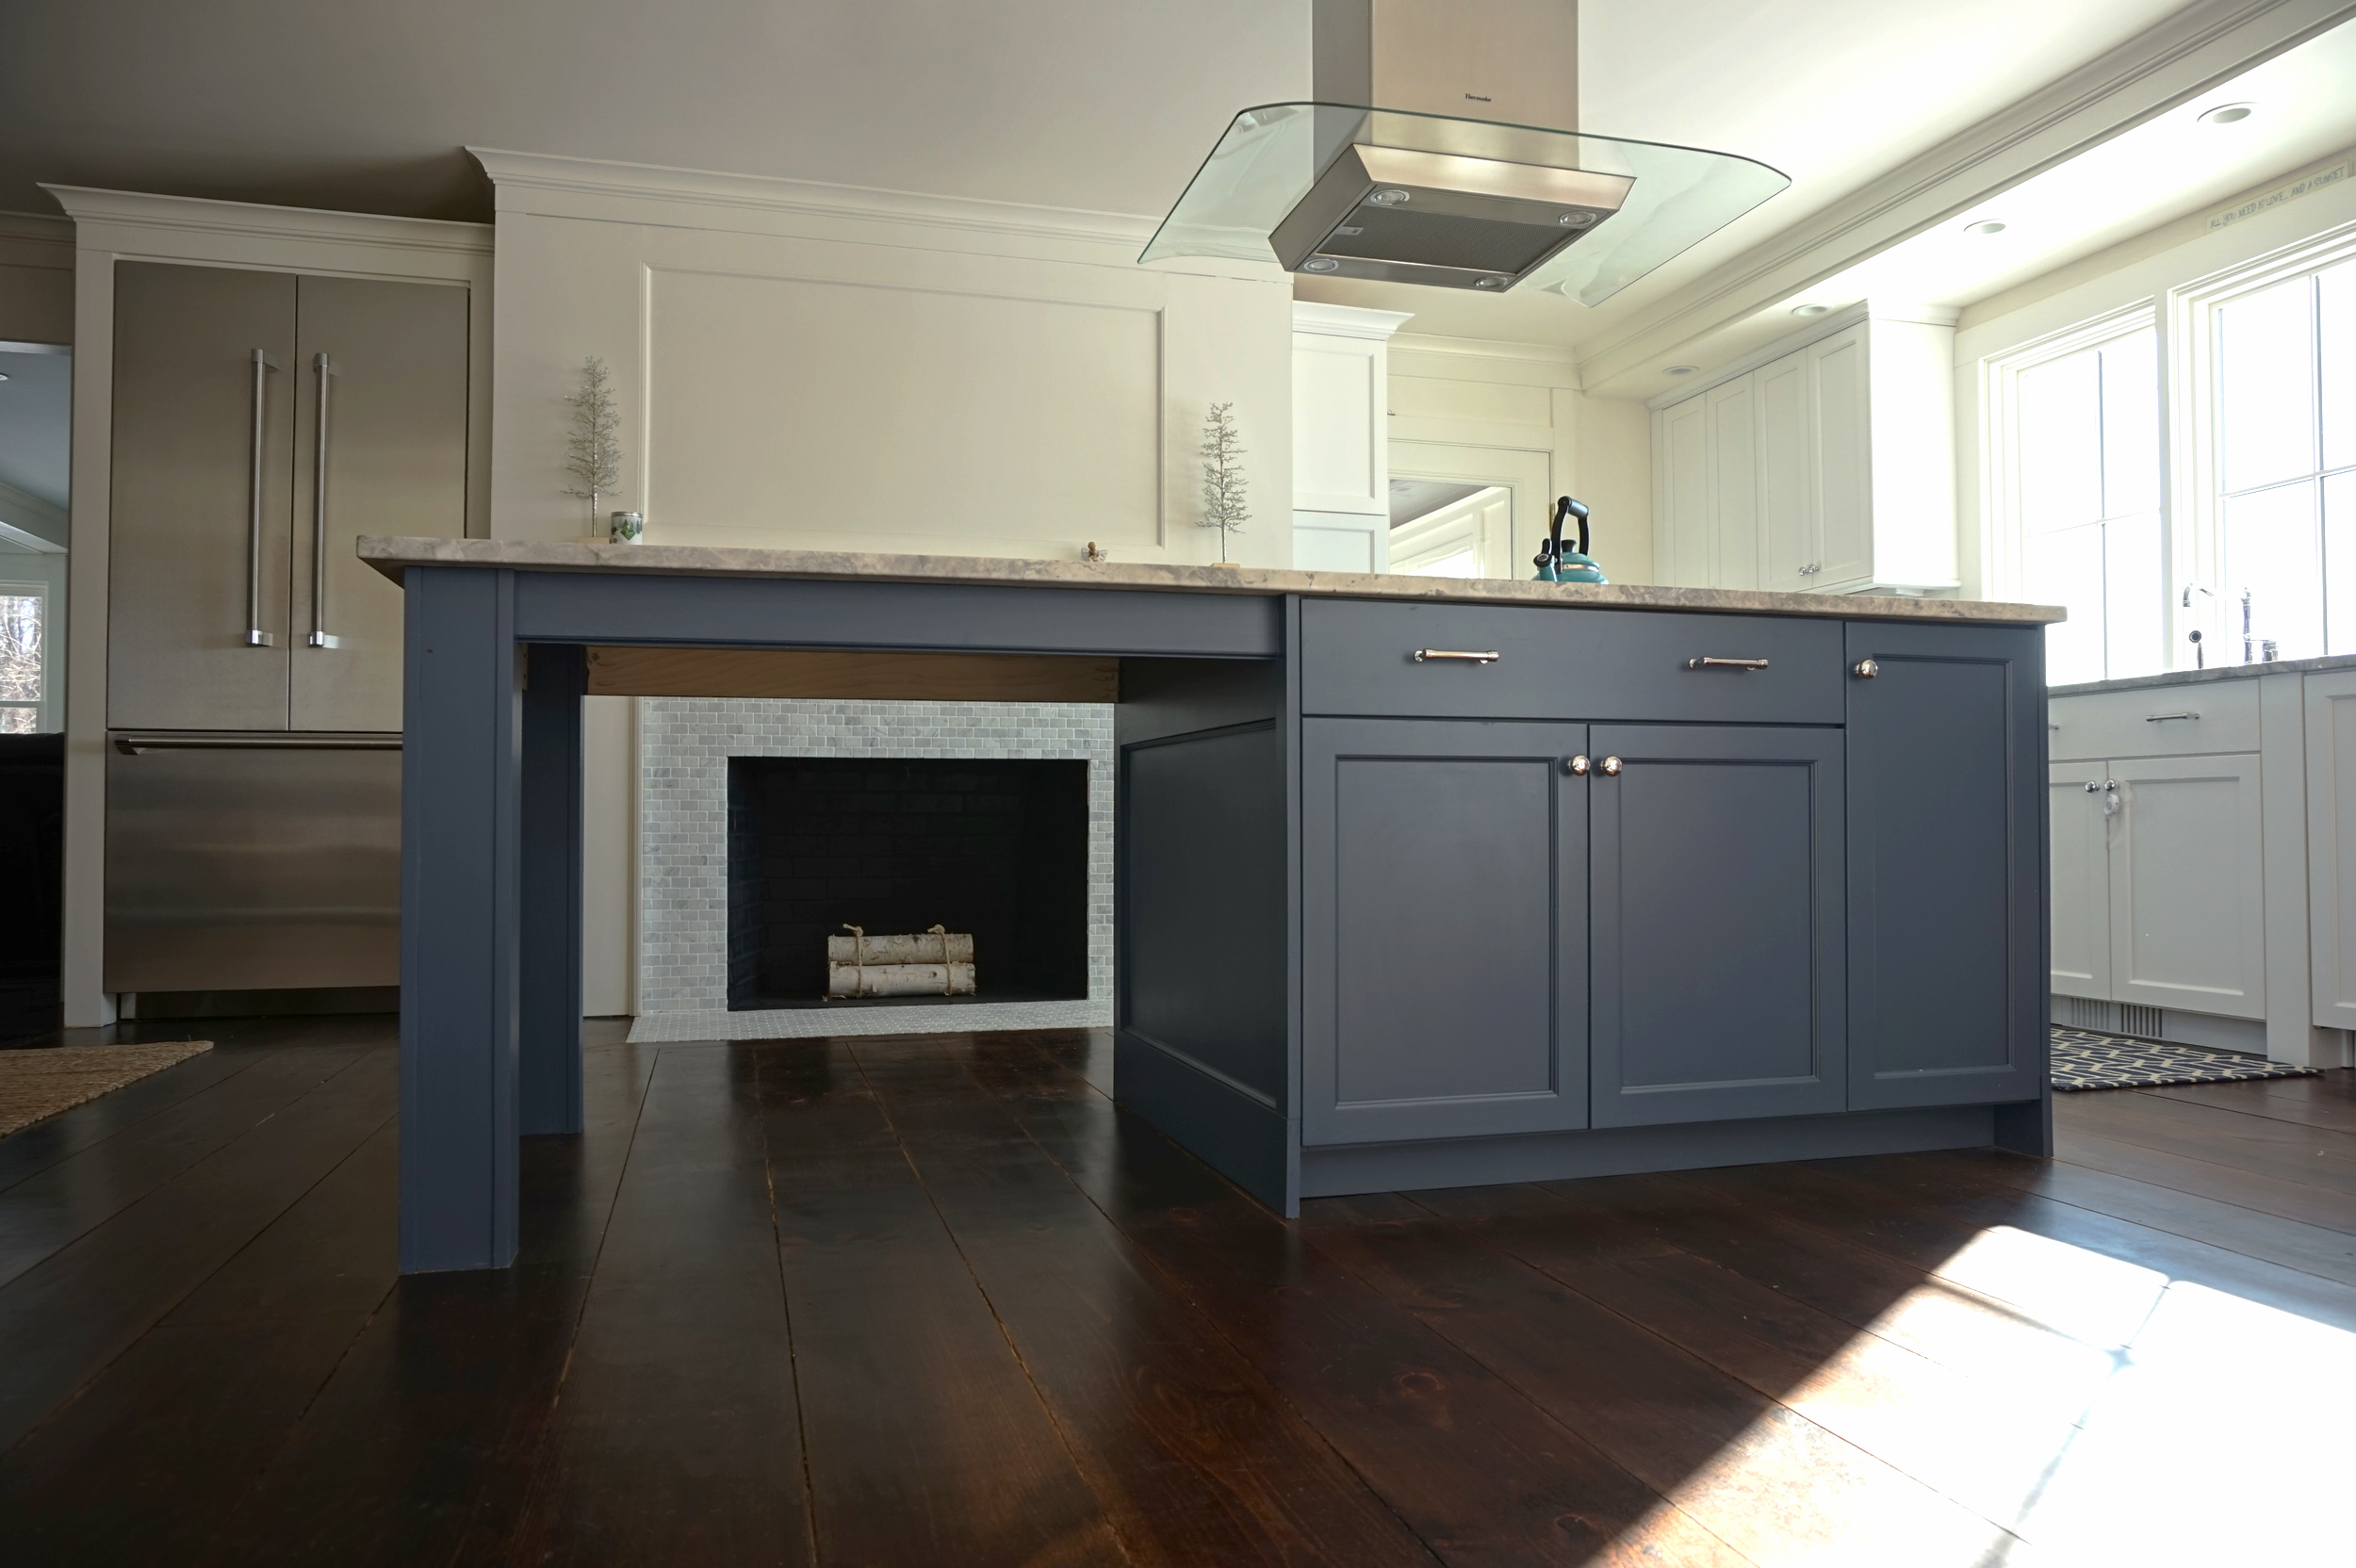 Kitchen Detail & Fireplace for Ridgefield CT Renovations